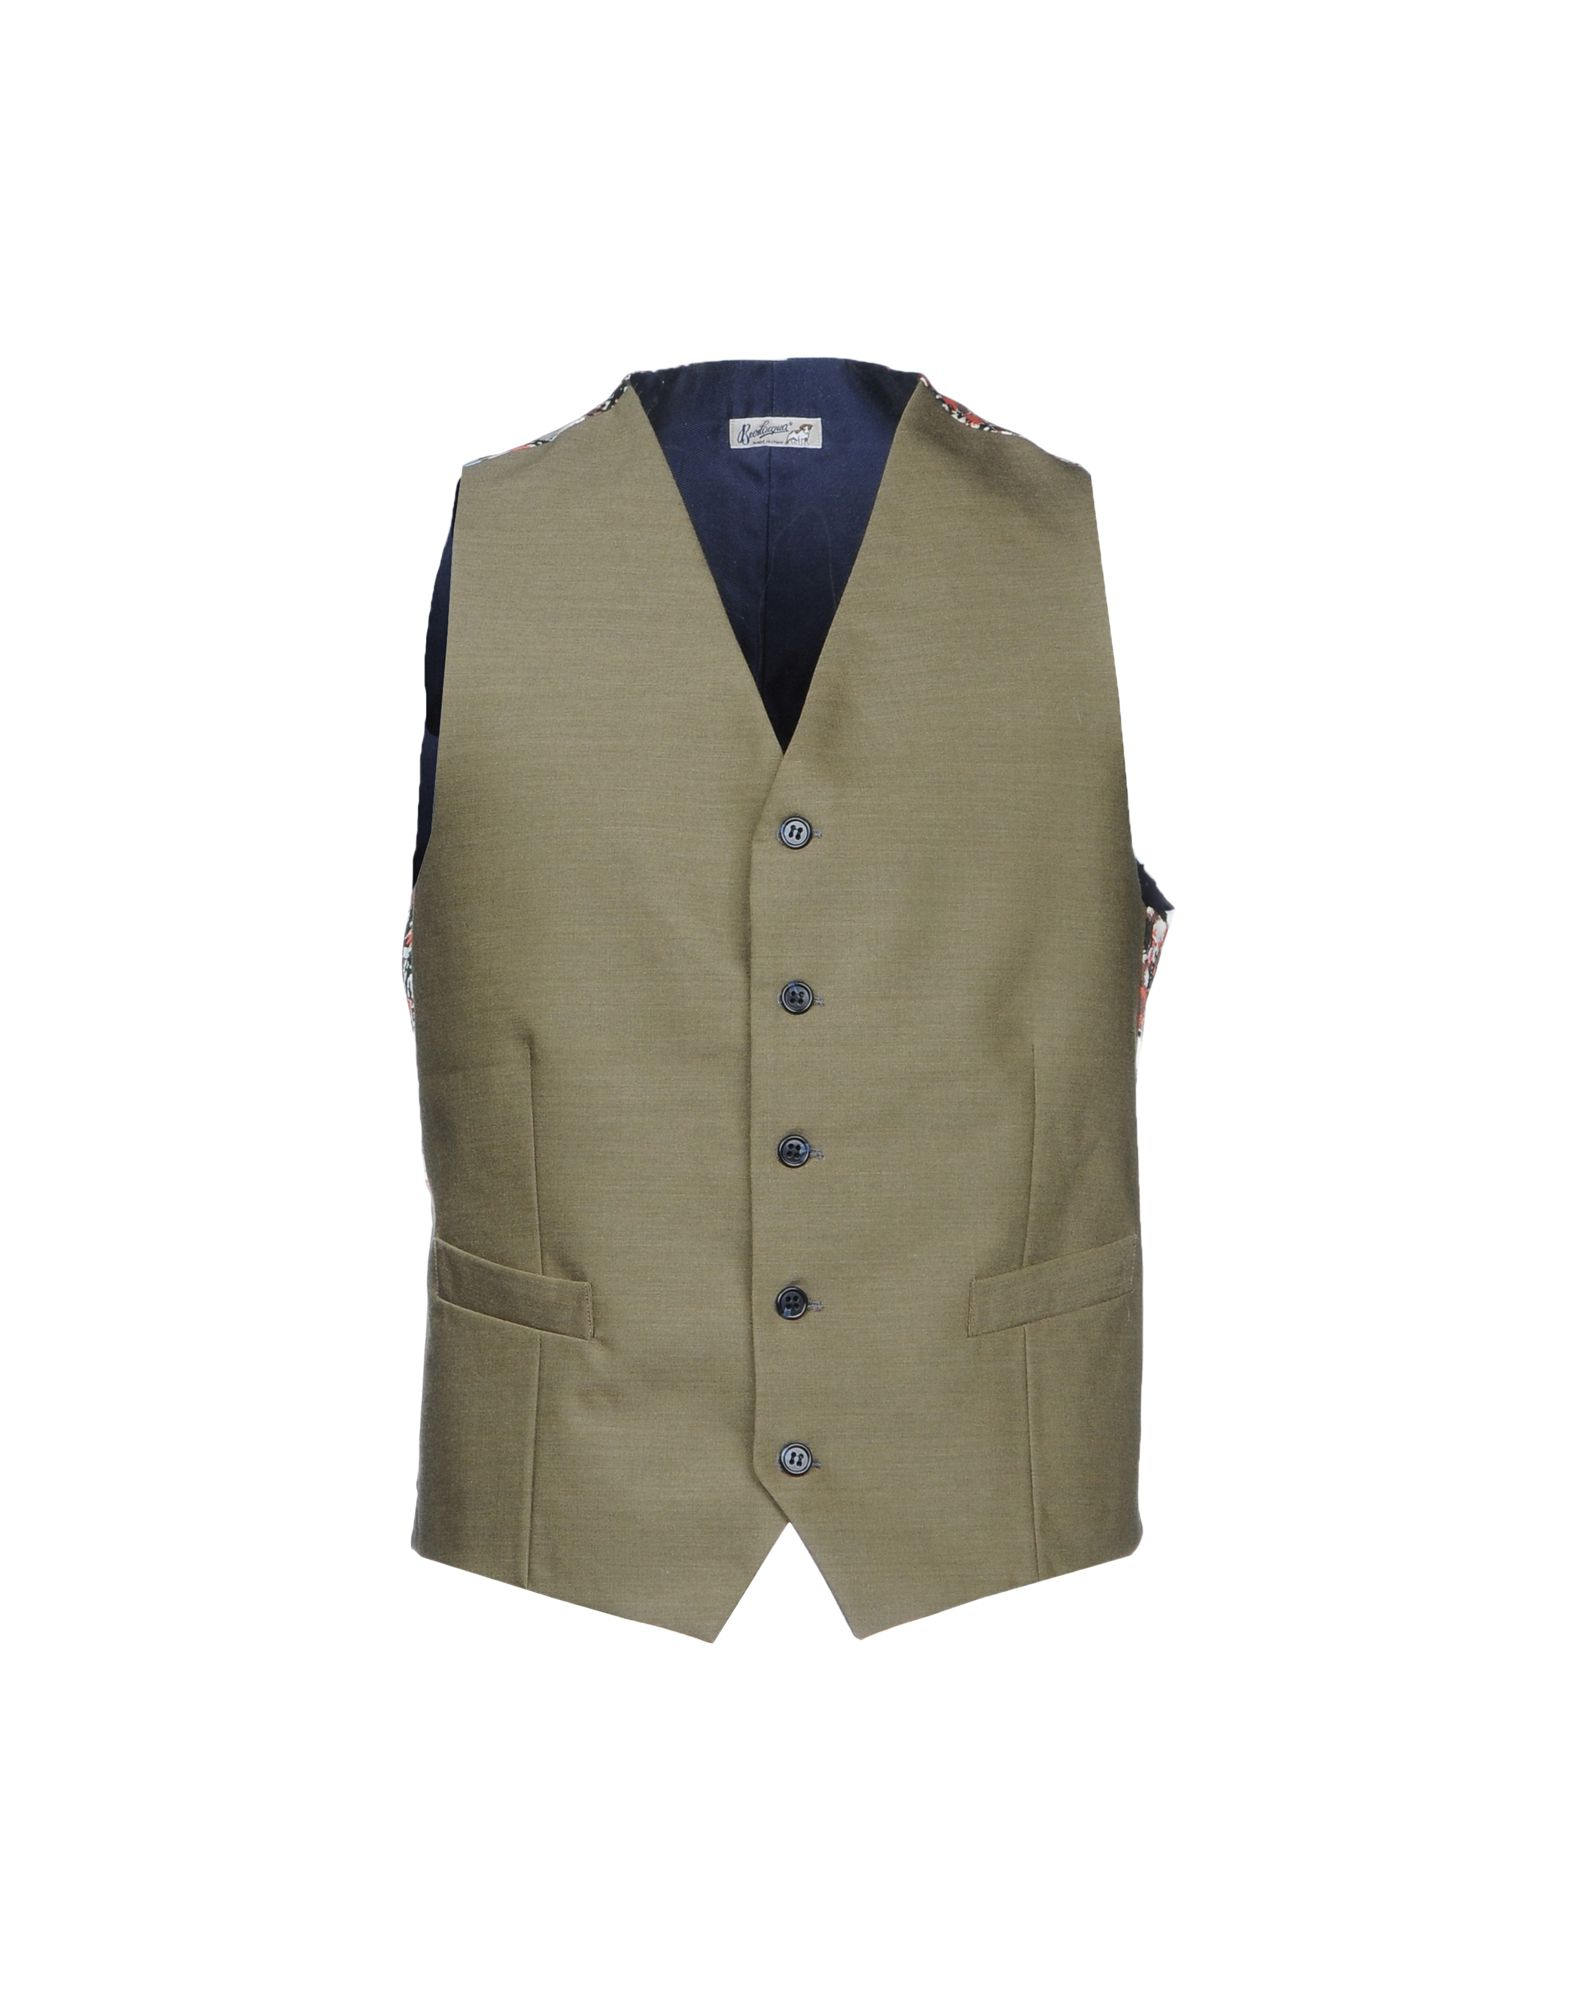 BEVILACQUA Suit Vest in Military Green